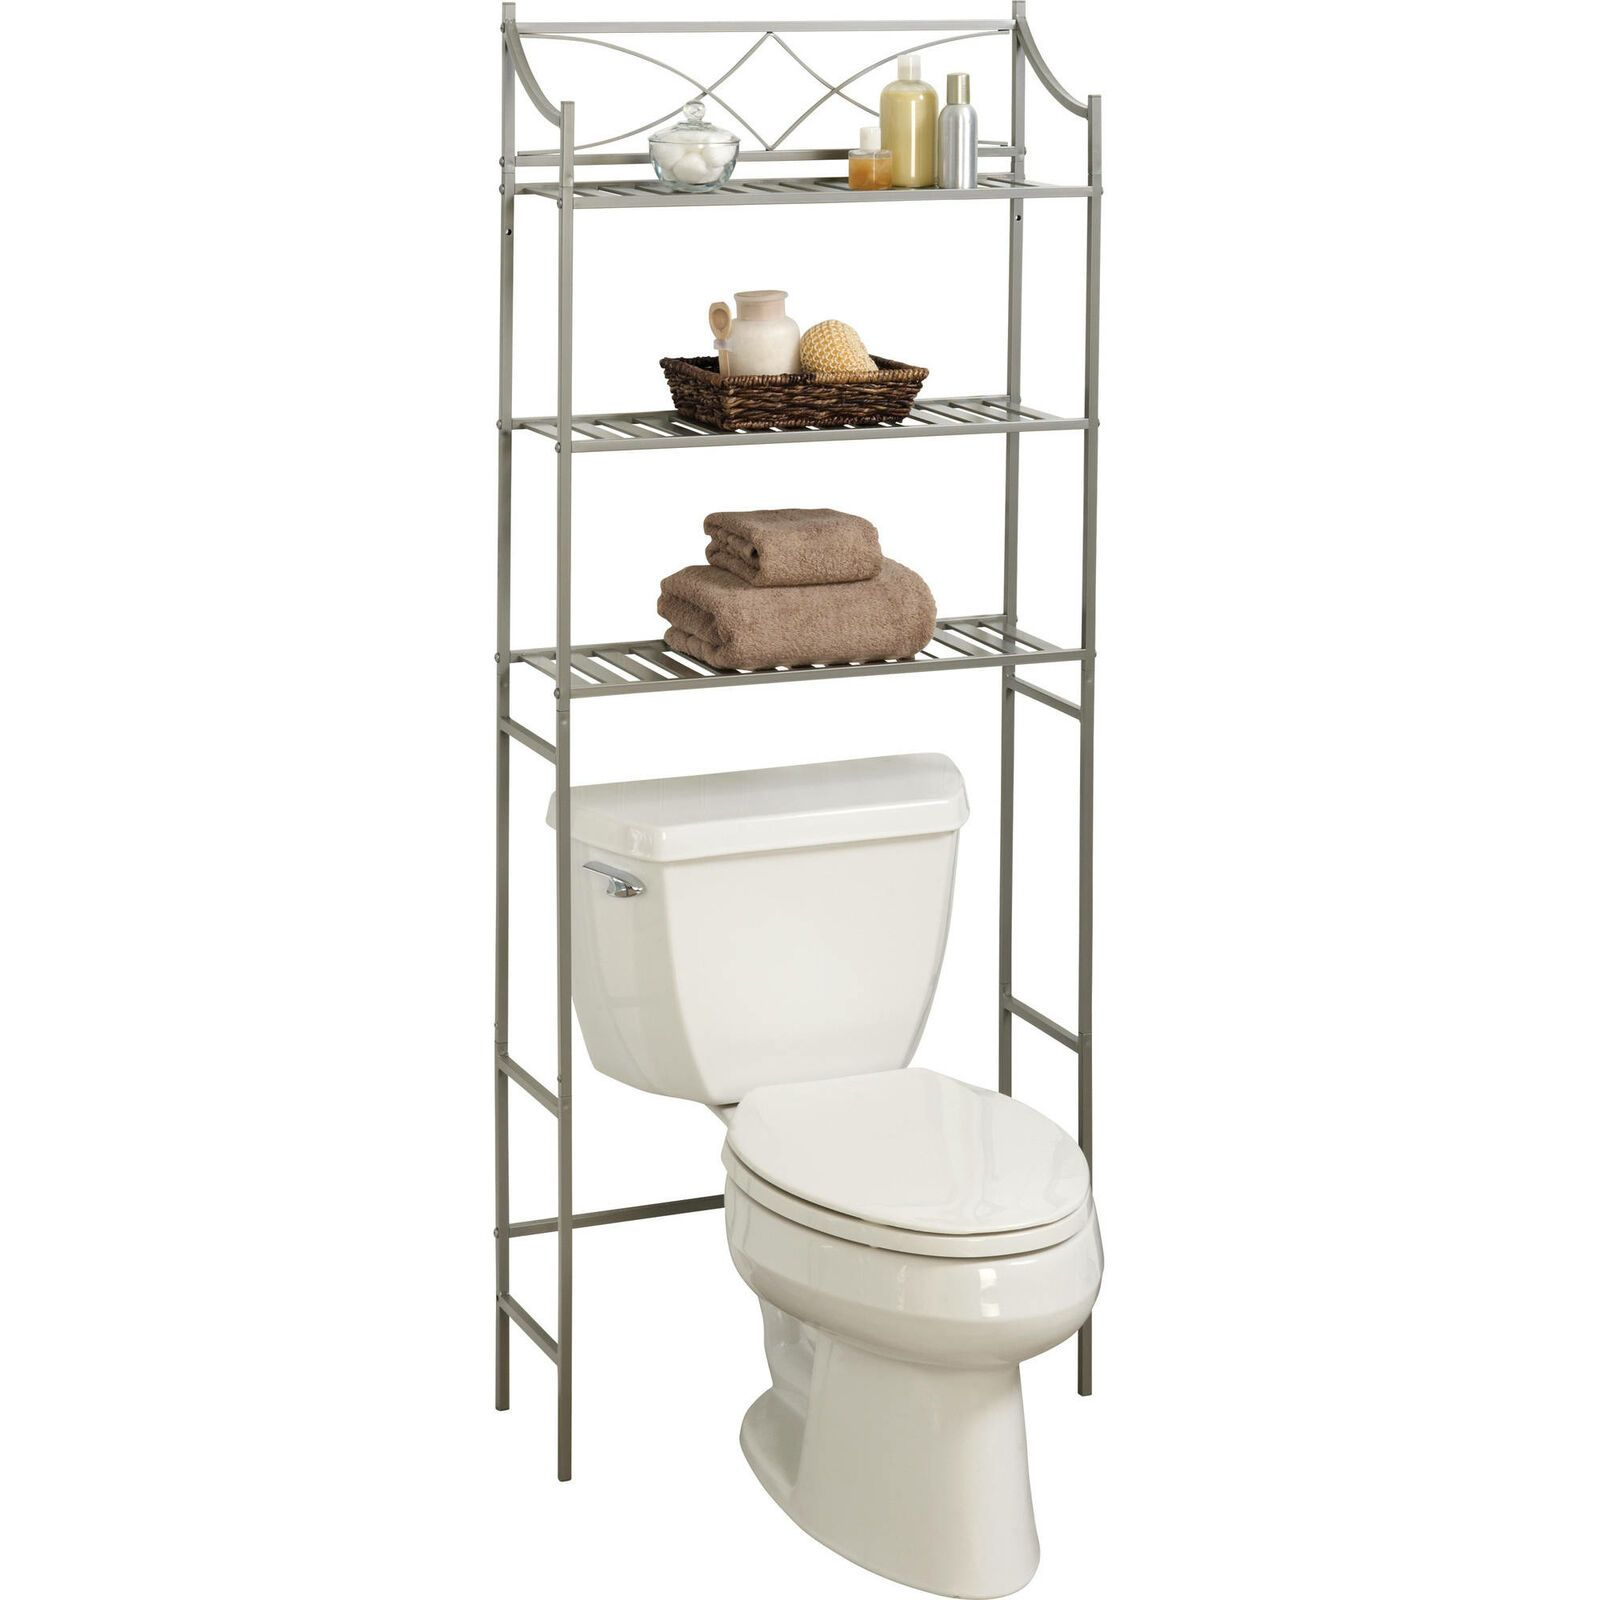 Details About Over The Toilet Bathroom Organizer 3 Shelf Space Metal Towel Storage Rack New Bathroom Organisation Bathroom Space Saver Towel Storage